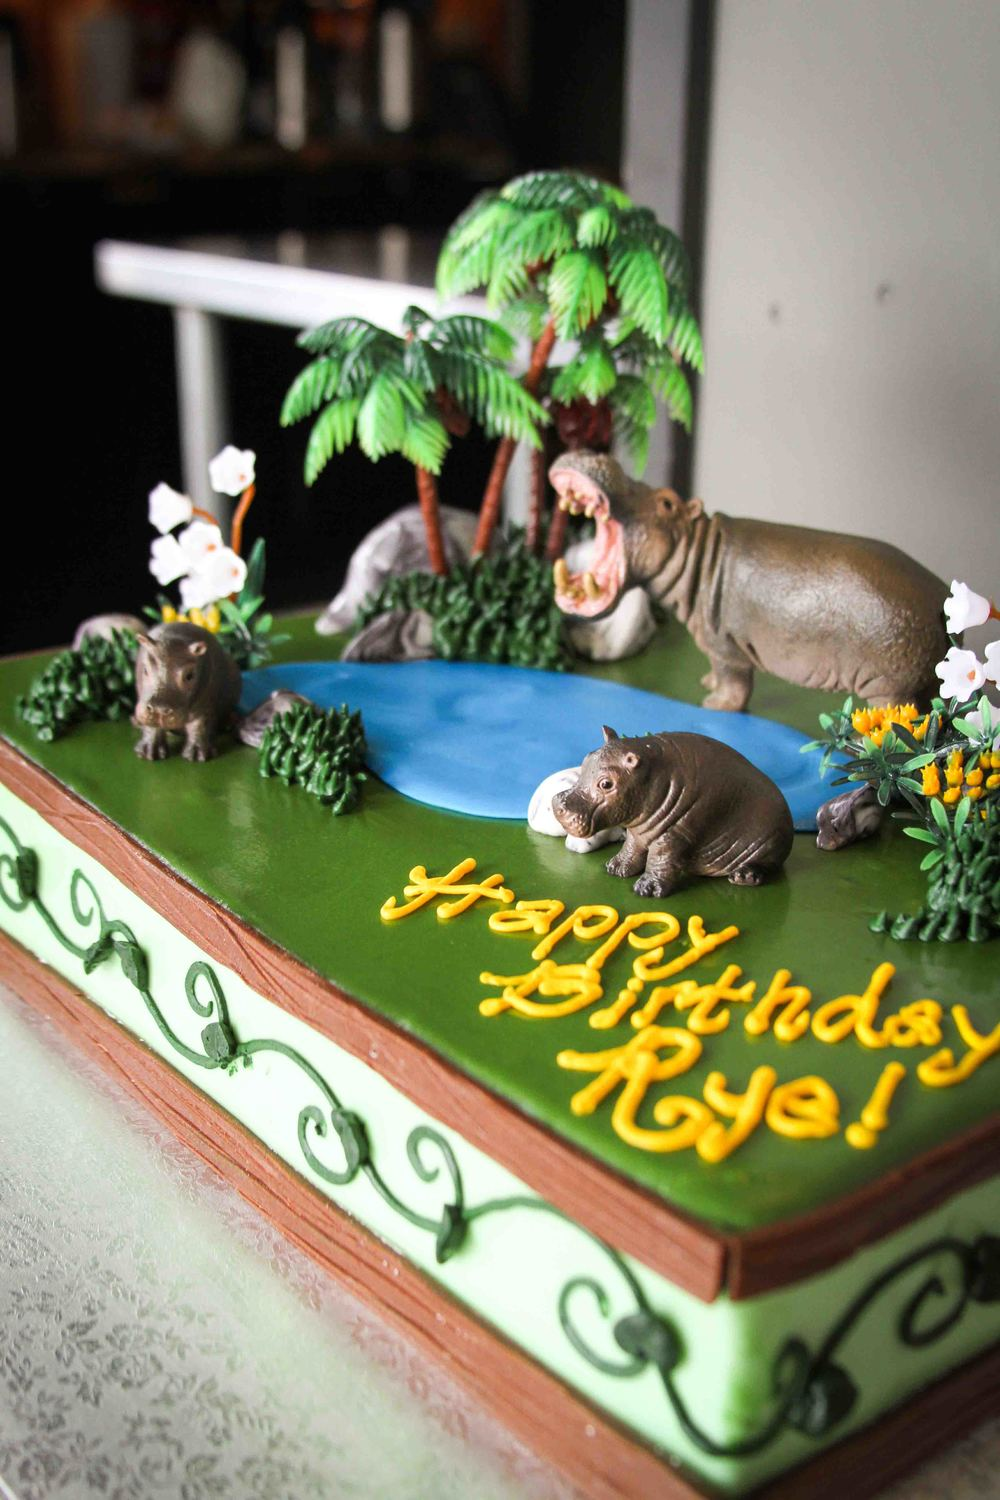 The birthday boy got a cool hippo cake, which was also extremely delicious.